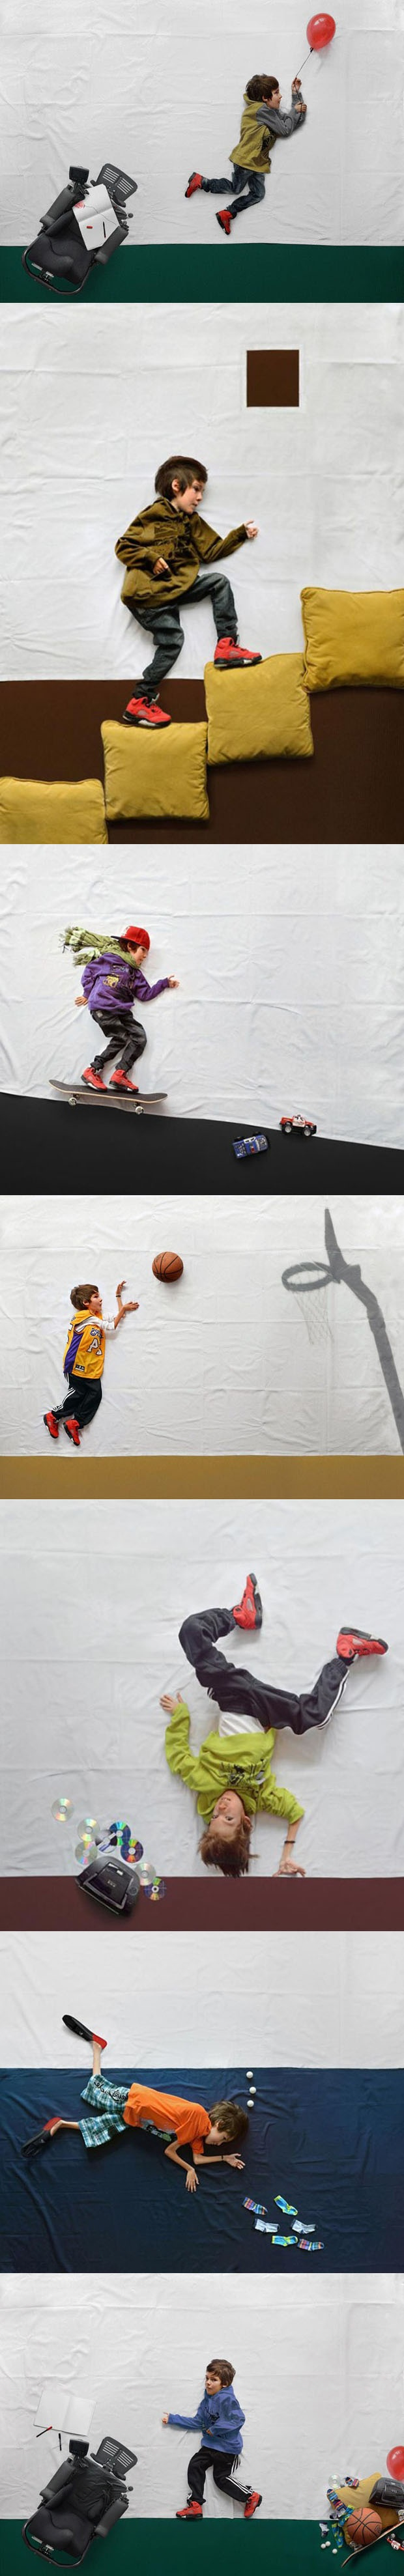 A boy with muscular dystrophy has his imagination brought to life through photos. I love this. Very inspiring :)